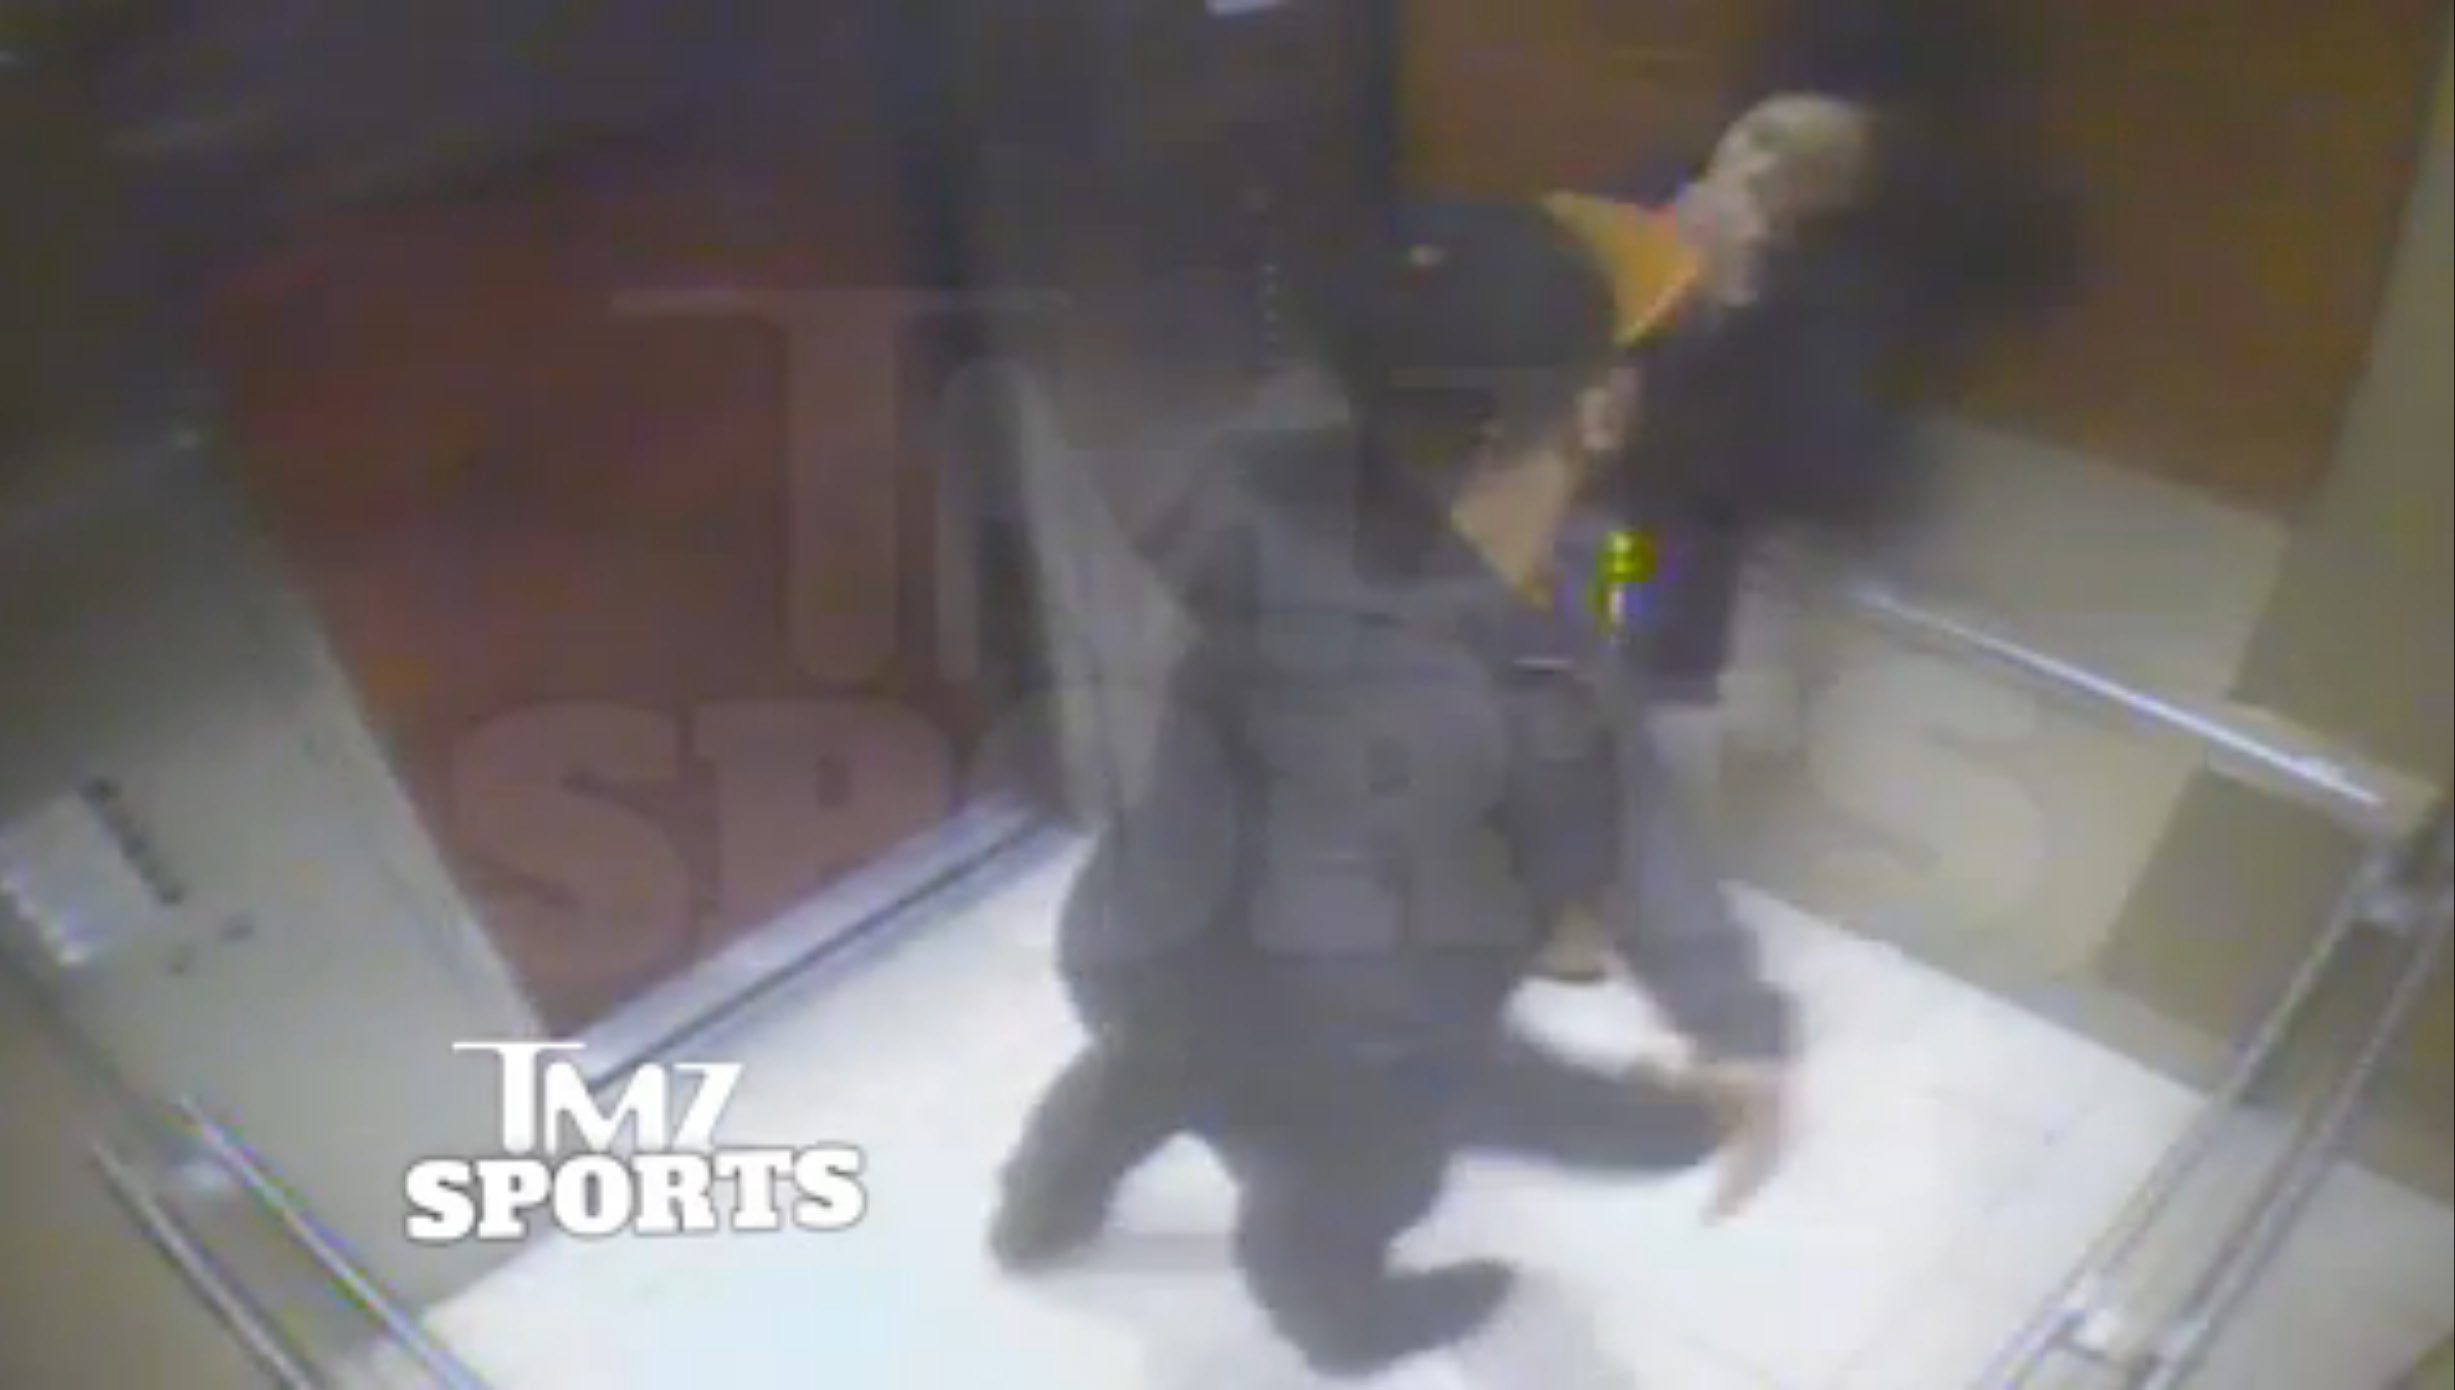 In this February 2014 file photo from a still image taken from a hotel security video released by TMZ Sports, Baltimore Ravens running back Ray Rice punches his fiancee, Janay Palmer, in an elevator at the Revel casino in Atlantic City, N.J. A law enforcement official says he sent a video of Ray Rice punching his then-fiancee to an NFL executive five months ago, while league officers have insisted they didn